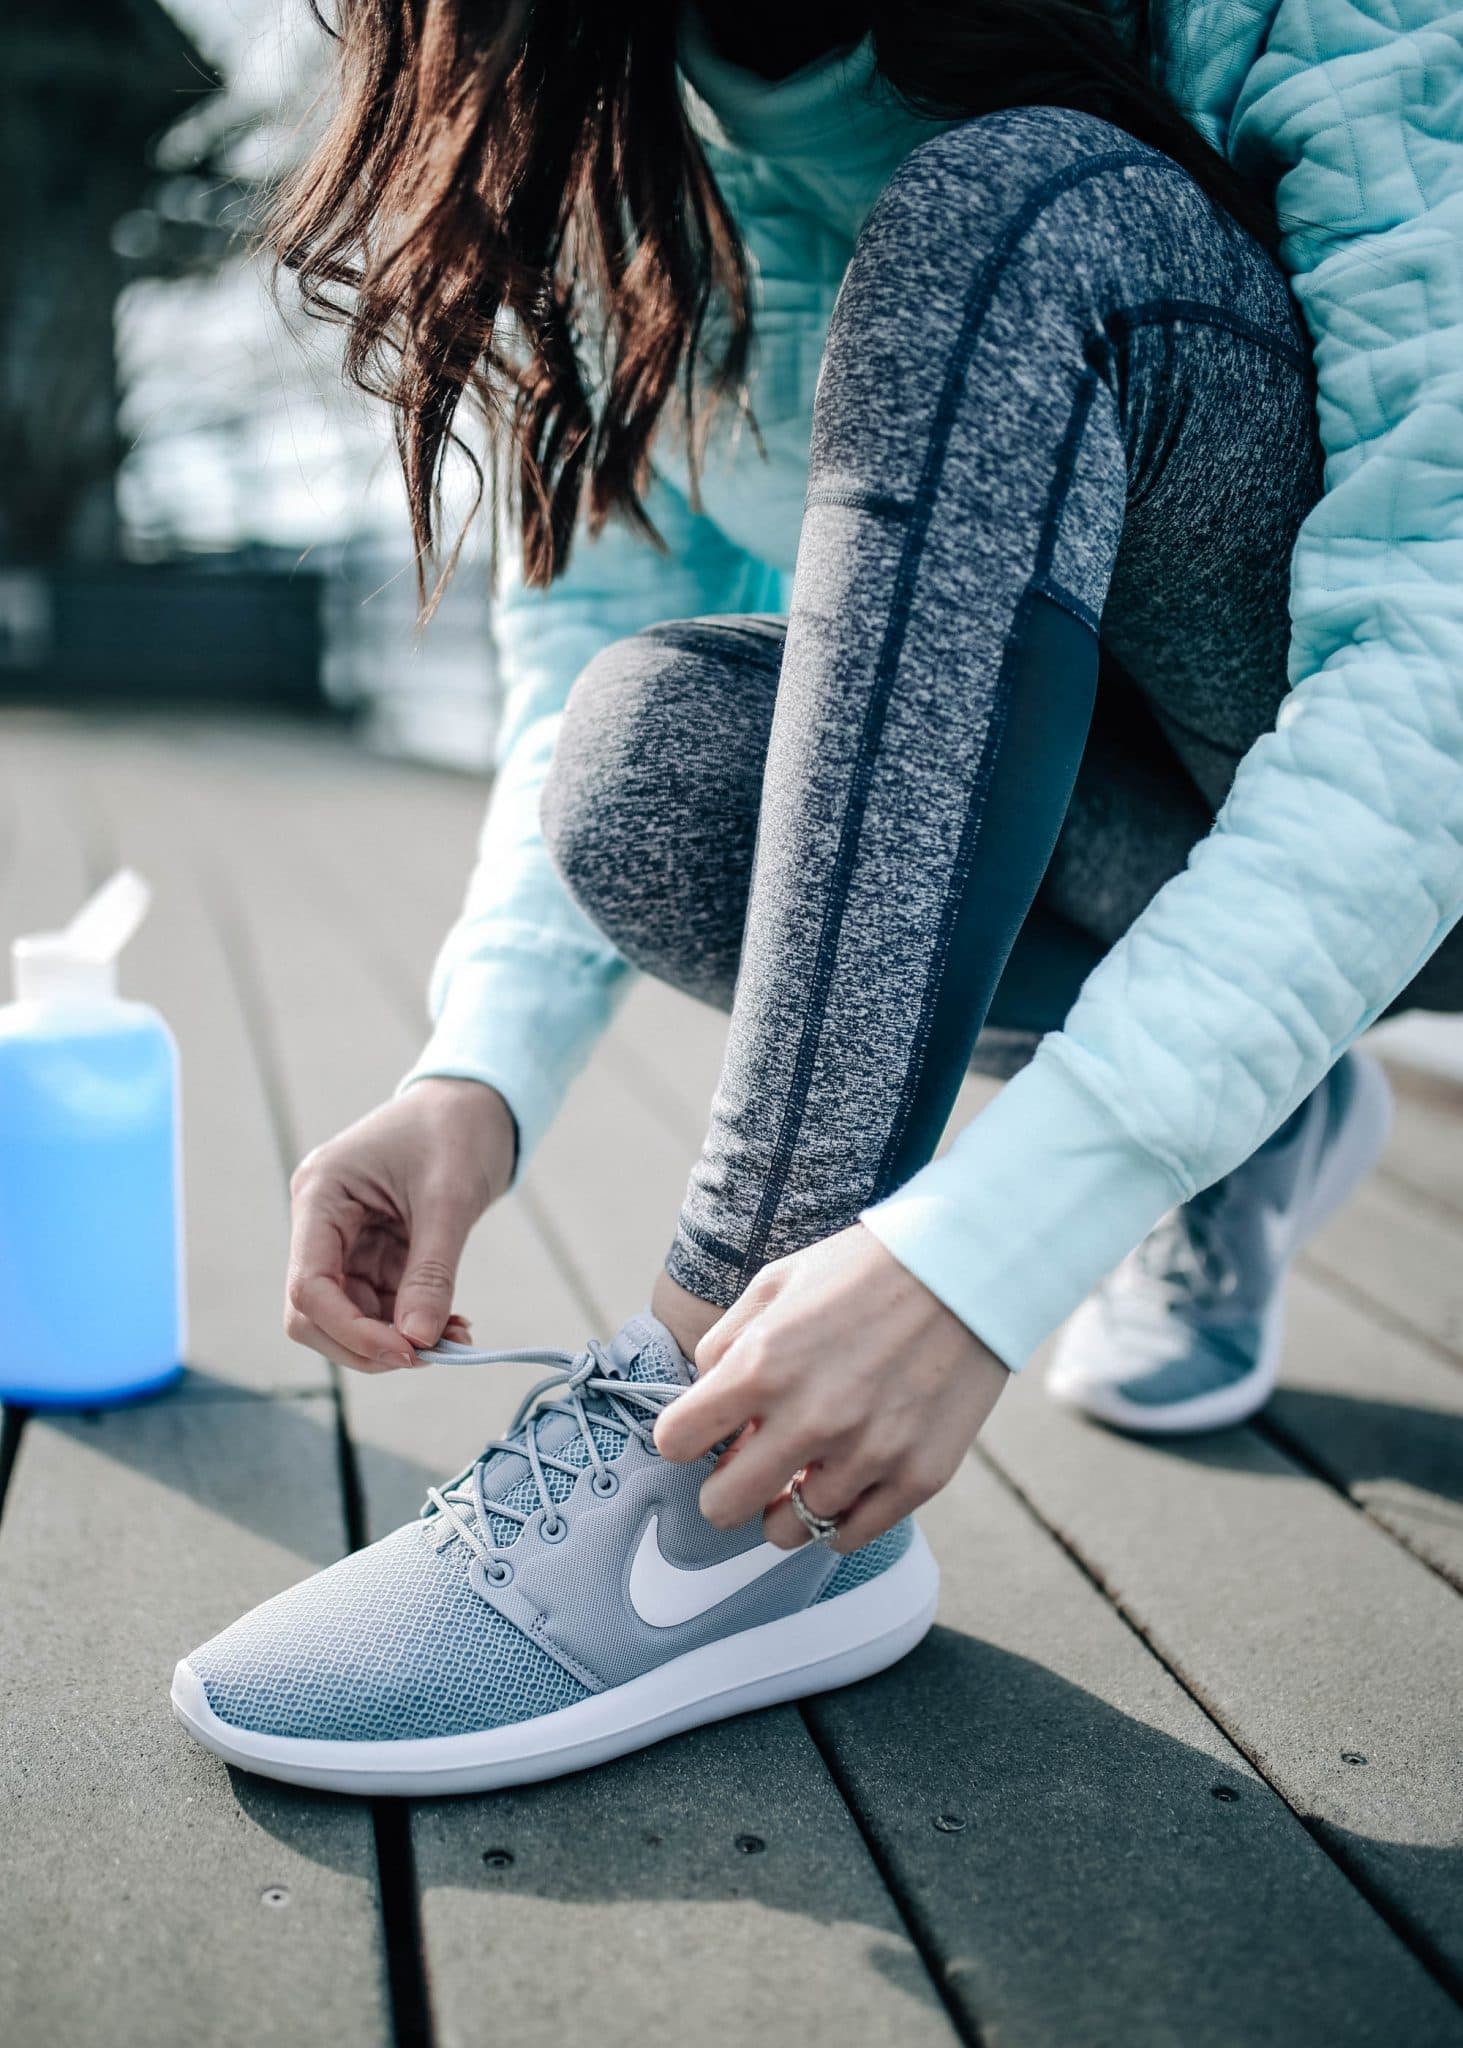 7700480eee9713 Luckily, one of my favorite retailers for activewear is having a huge end  of year sale right now! Shopbop is offering an extra 25% off all their sale  ...